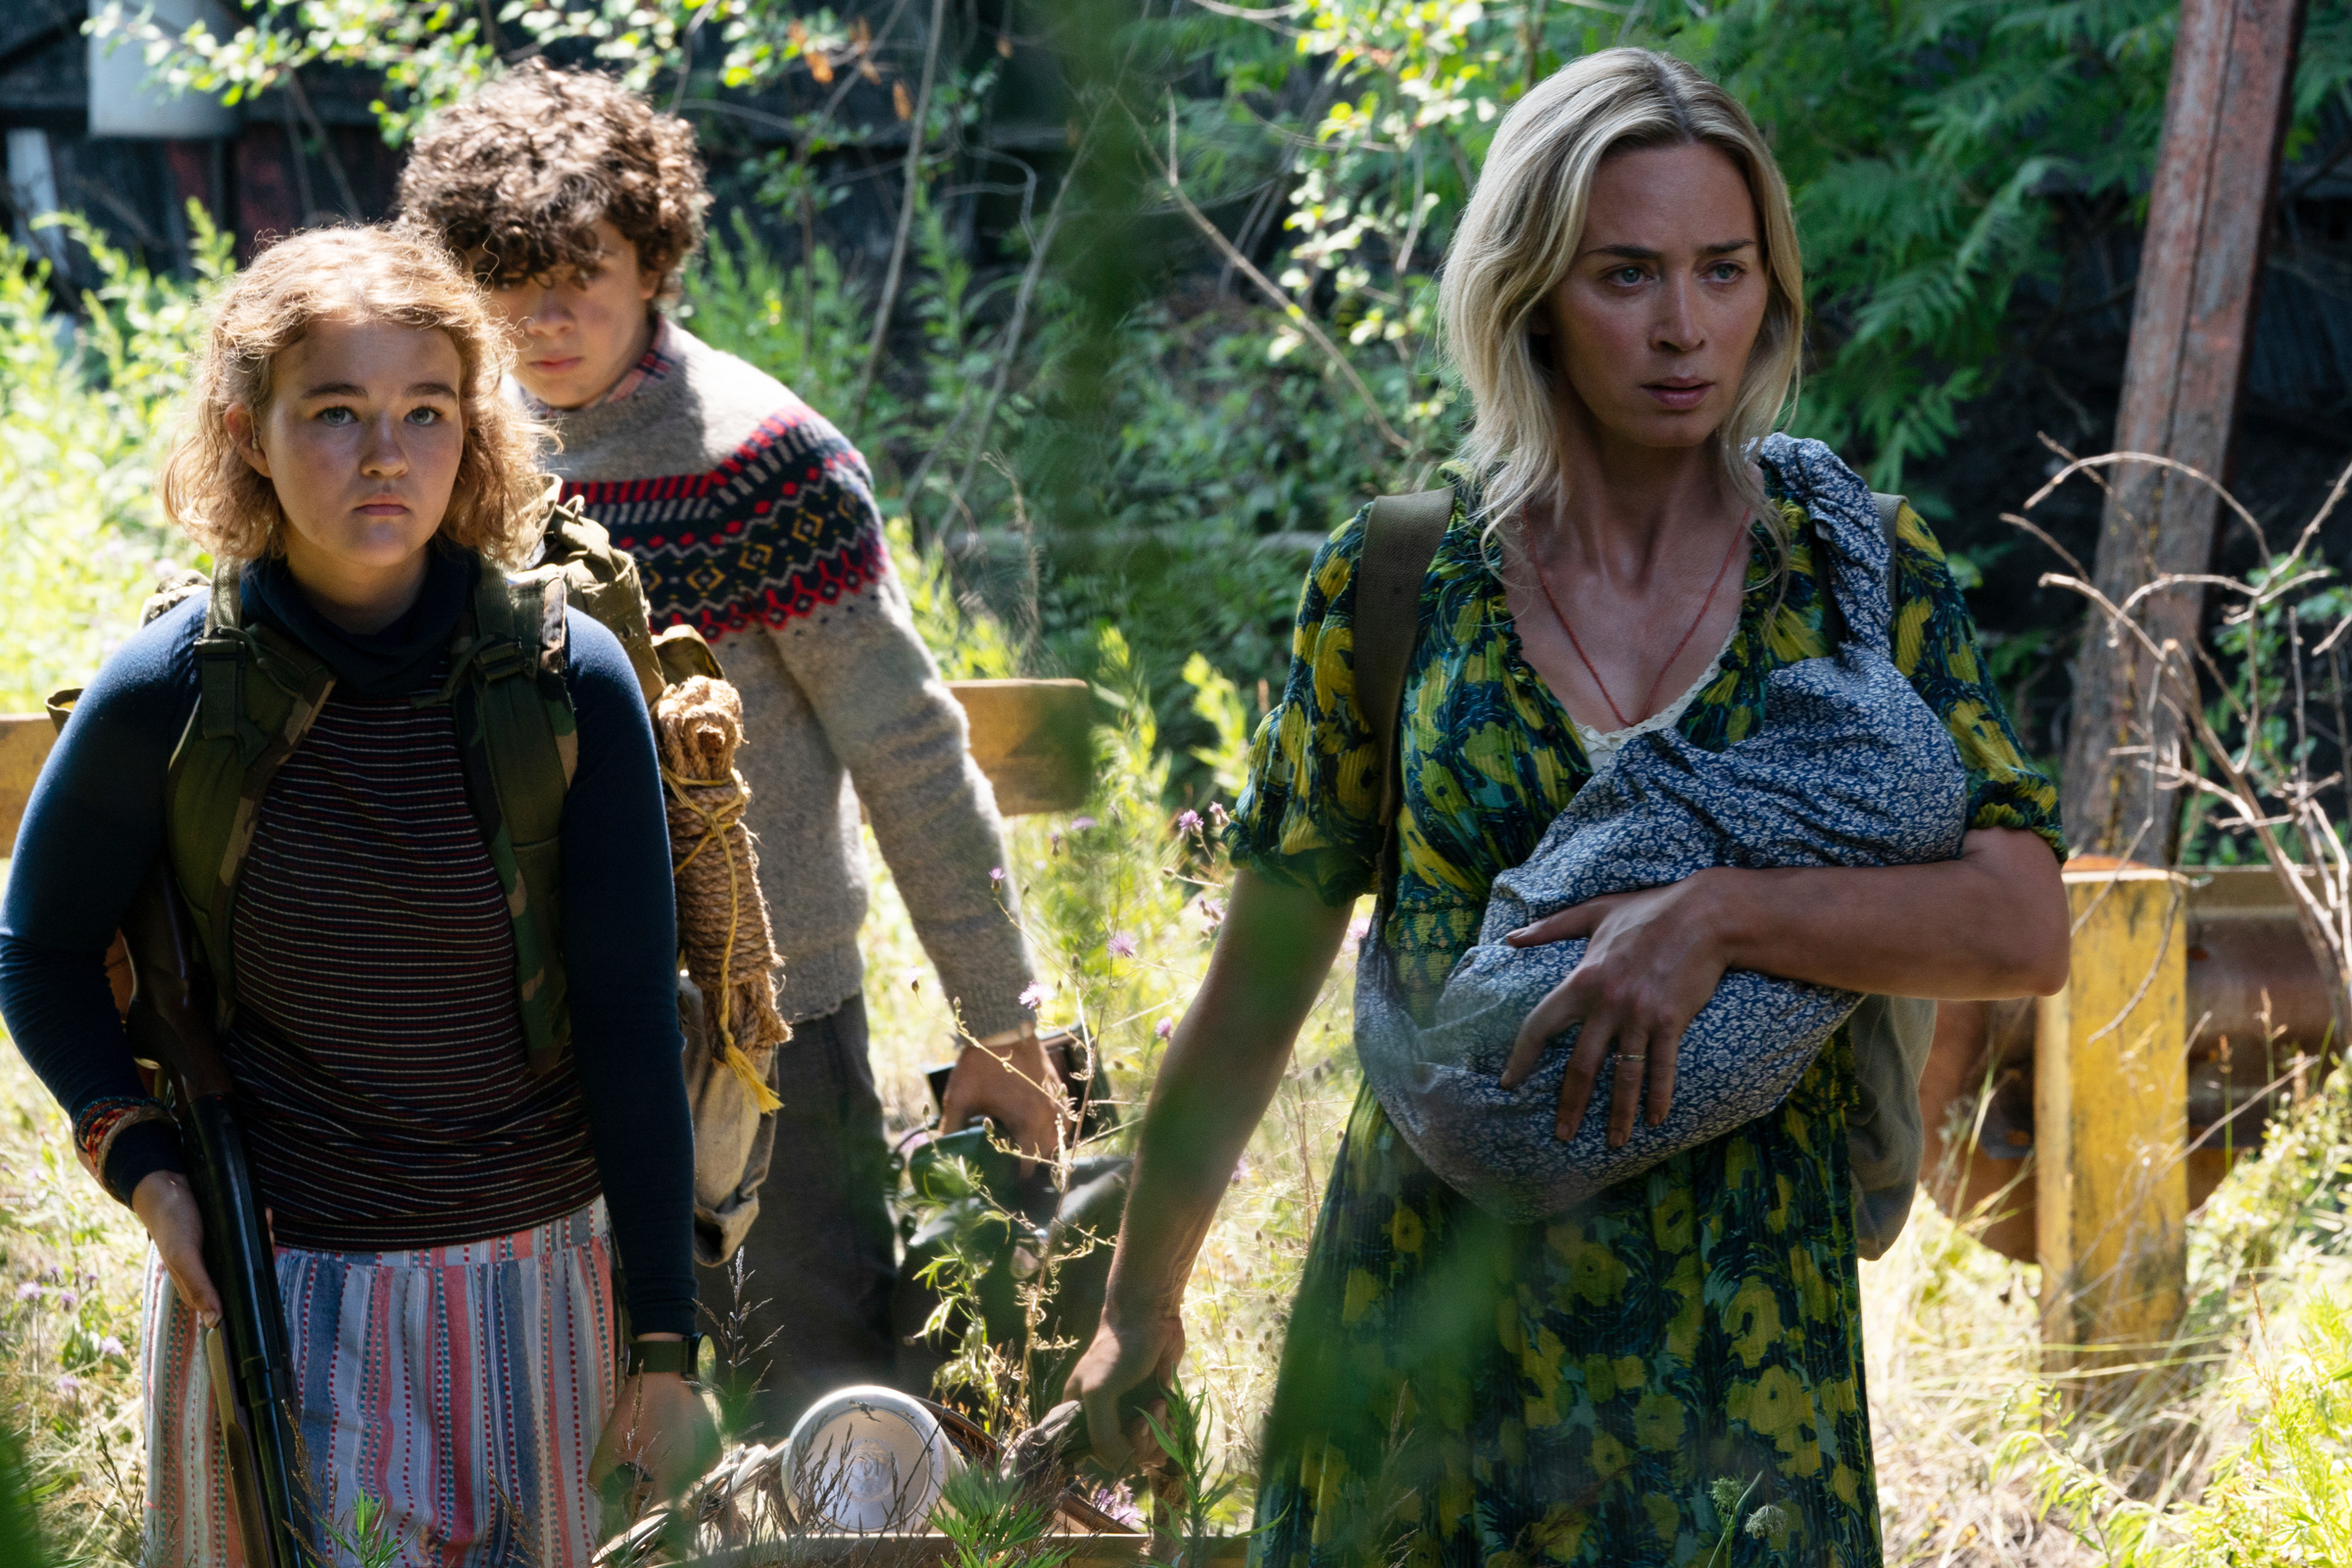 Emily Blunt Treads Lightly Through the Woods in 'A Quiet Place: Part 2' Teaser